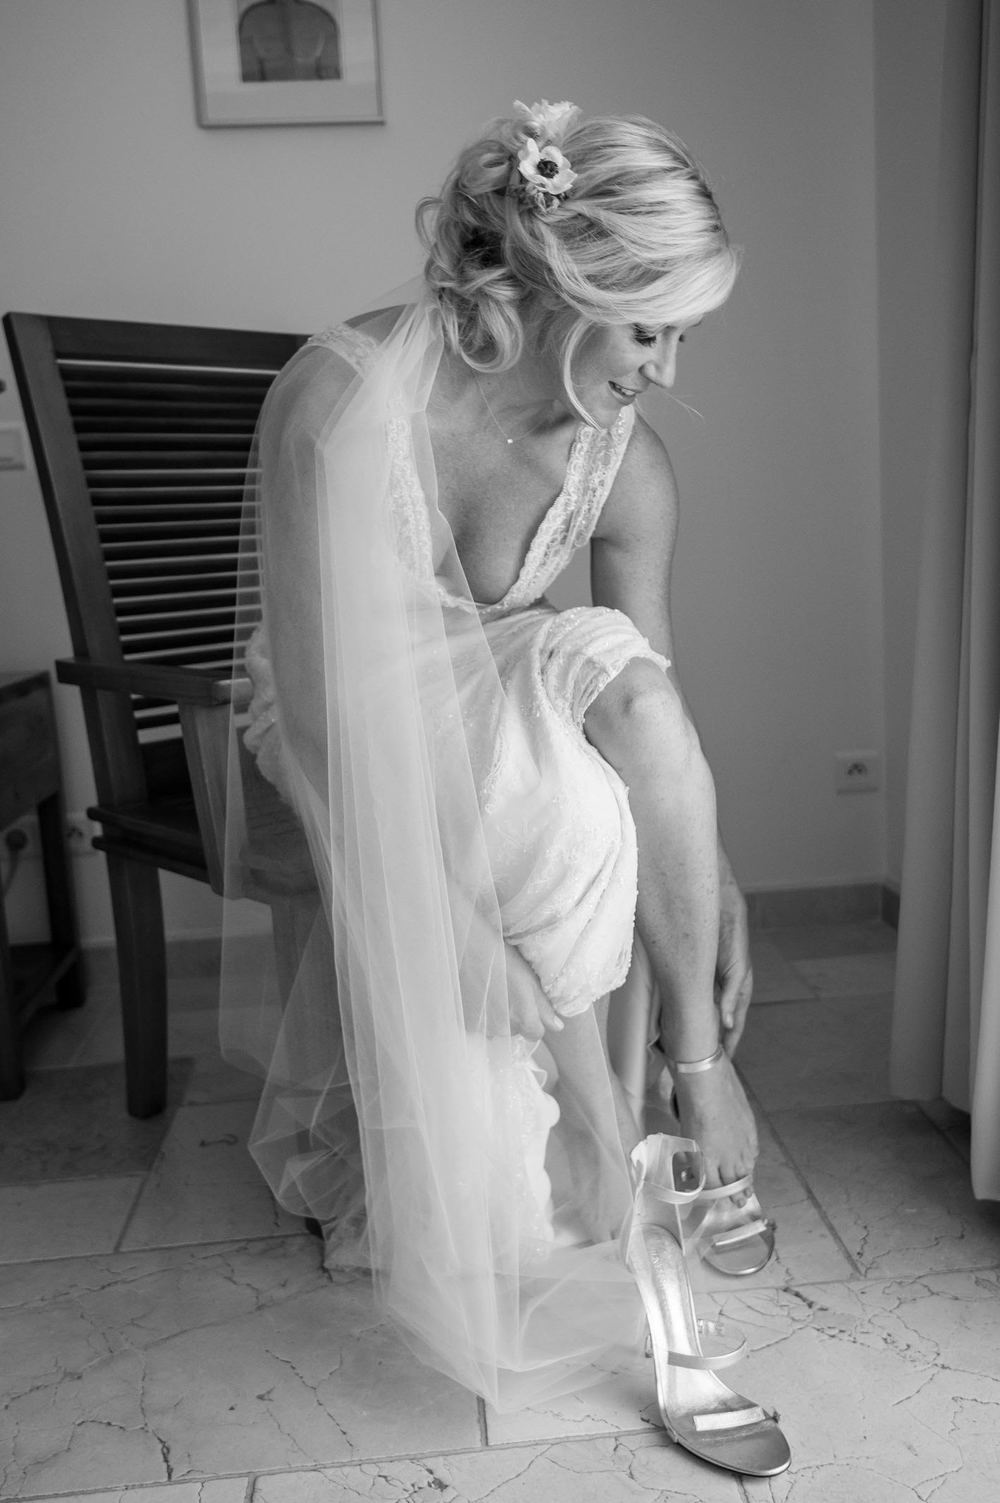 BRUNO DUBREUIL-photography-st-barts-wedding-ivory-and-beau-bridal-boutique-savannah-wedding-dresses-savannah-bridal-gowns-savannah-weddings-rebecca-schoneveld-gemma-art-deco-wedding-dress-destination-wedding-georgia-bridal-1.jpg